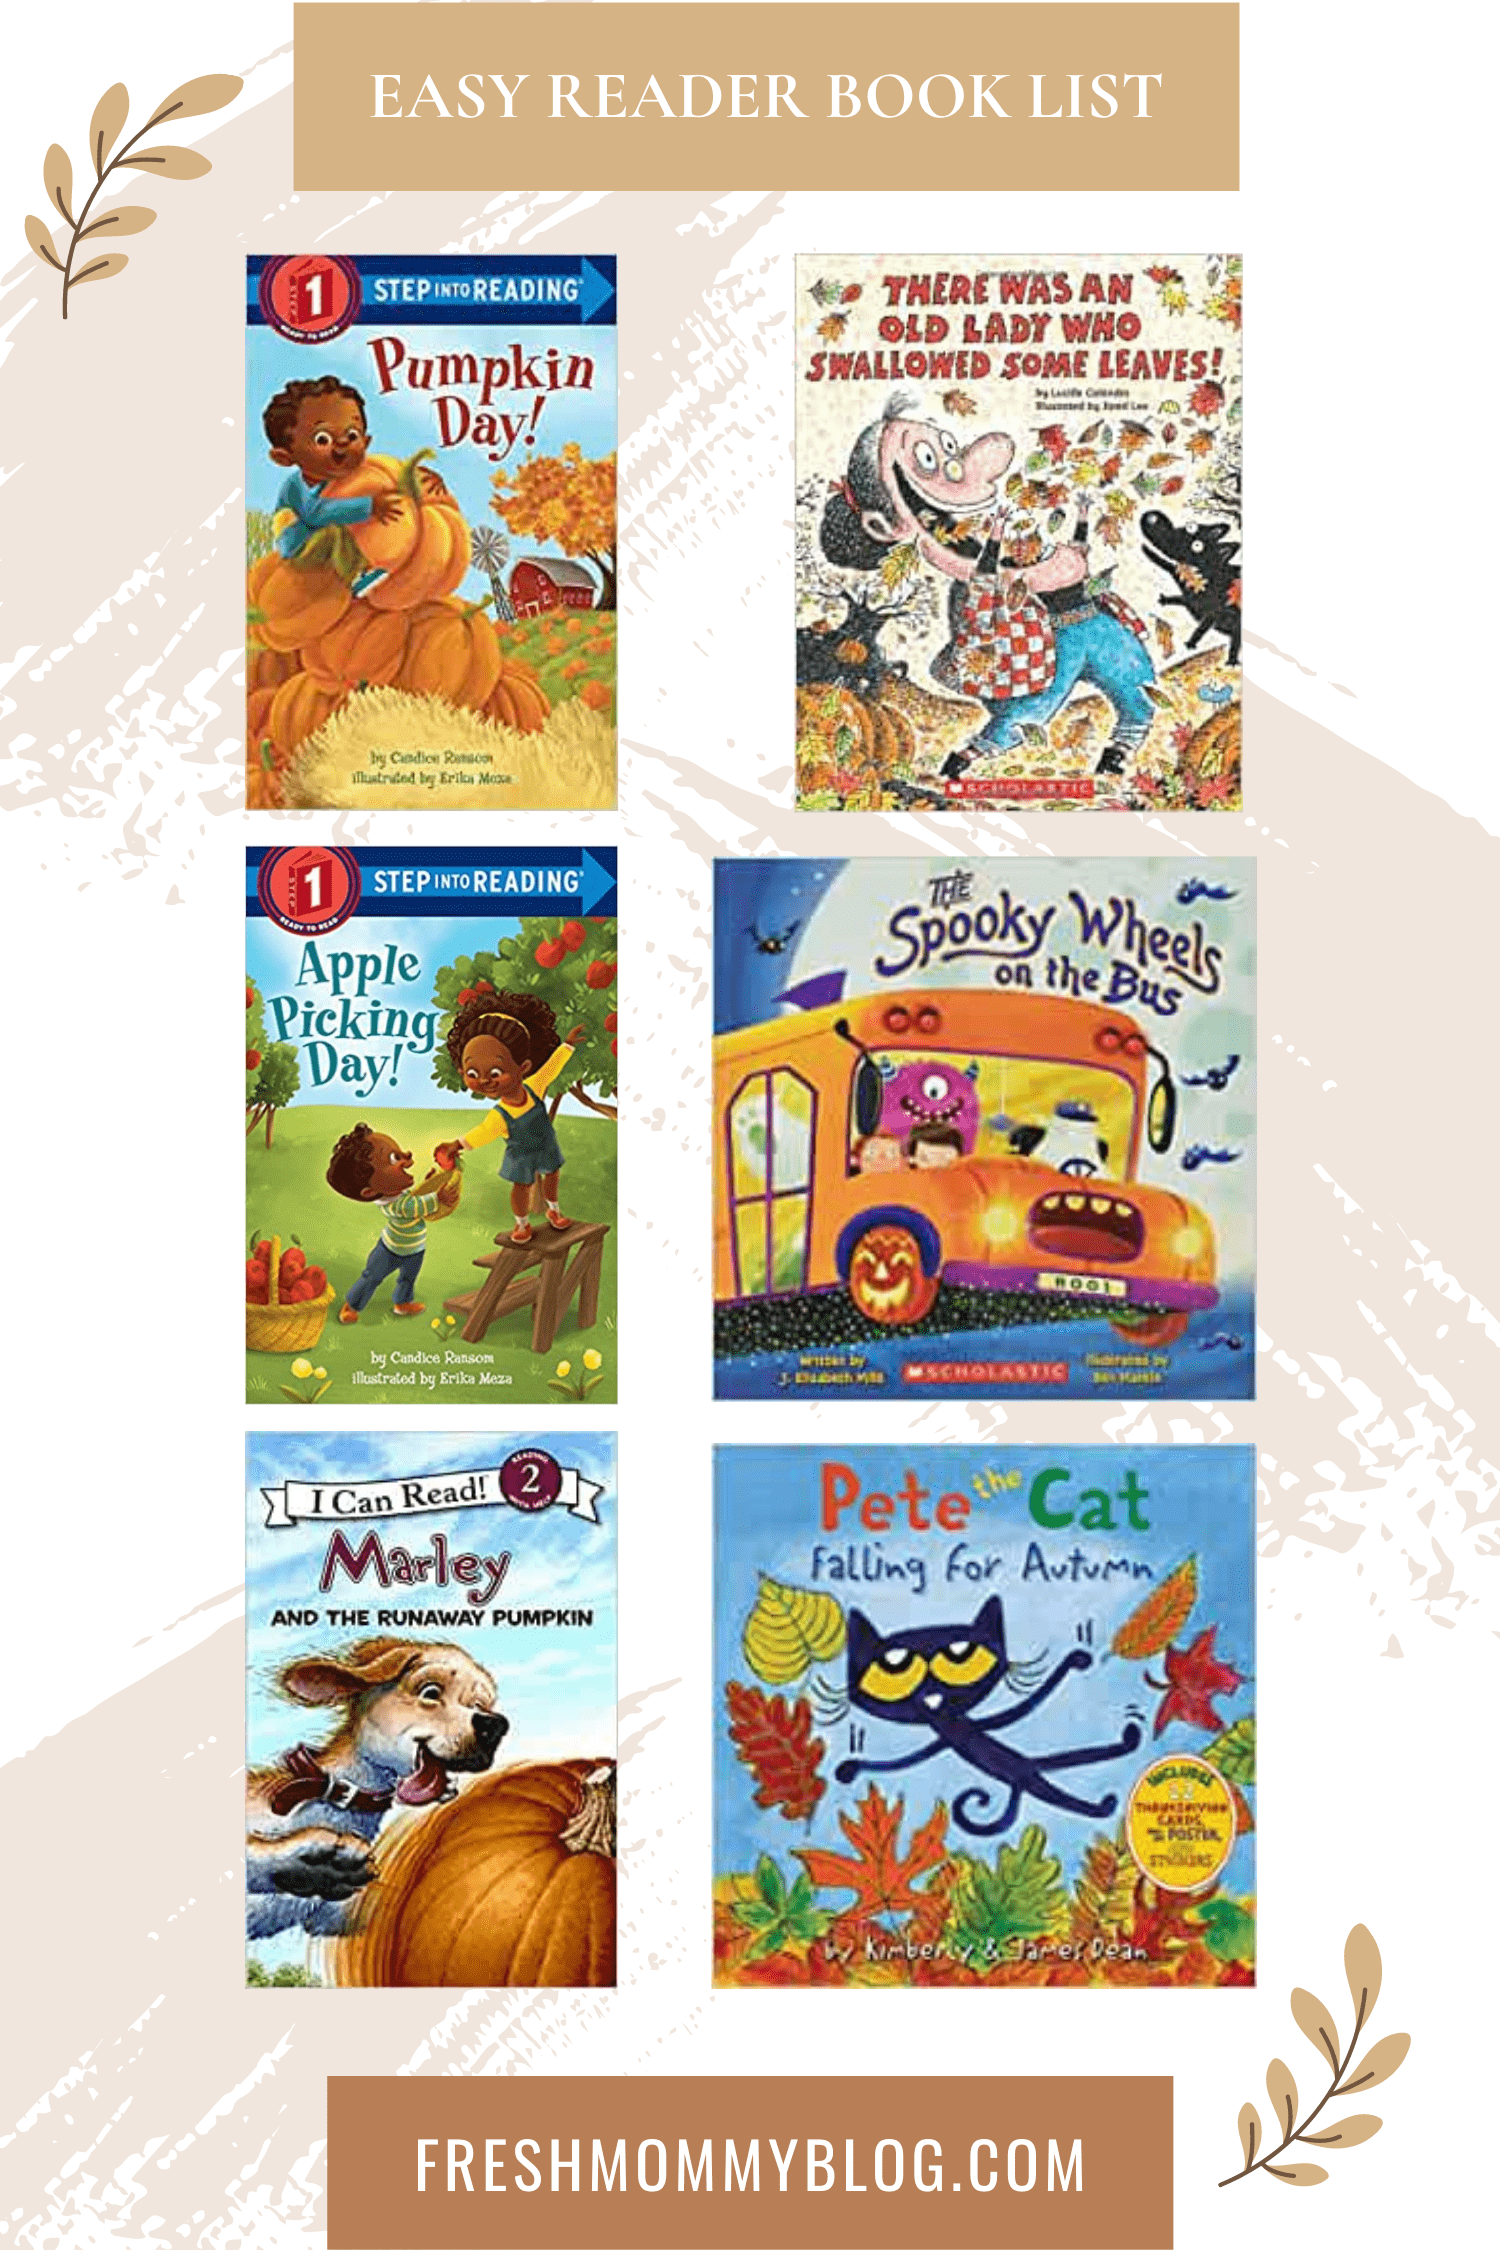 If you're looking for the perfect fall childrens books, look no further! The roundup of our top fall kids books has you covered, whether you're looking for something to entertain your toddler or a fall book list to keep your older kids busy all autumn long.